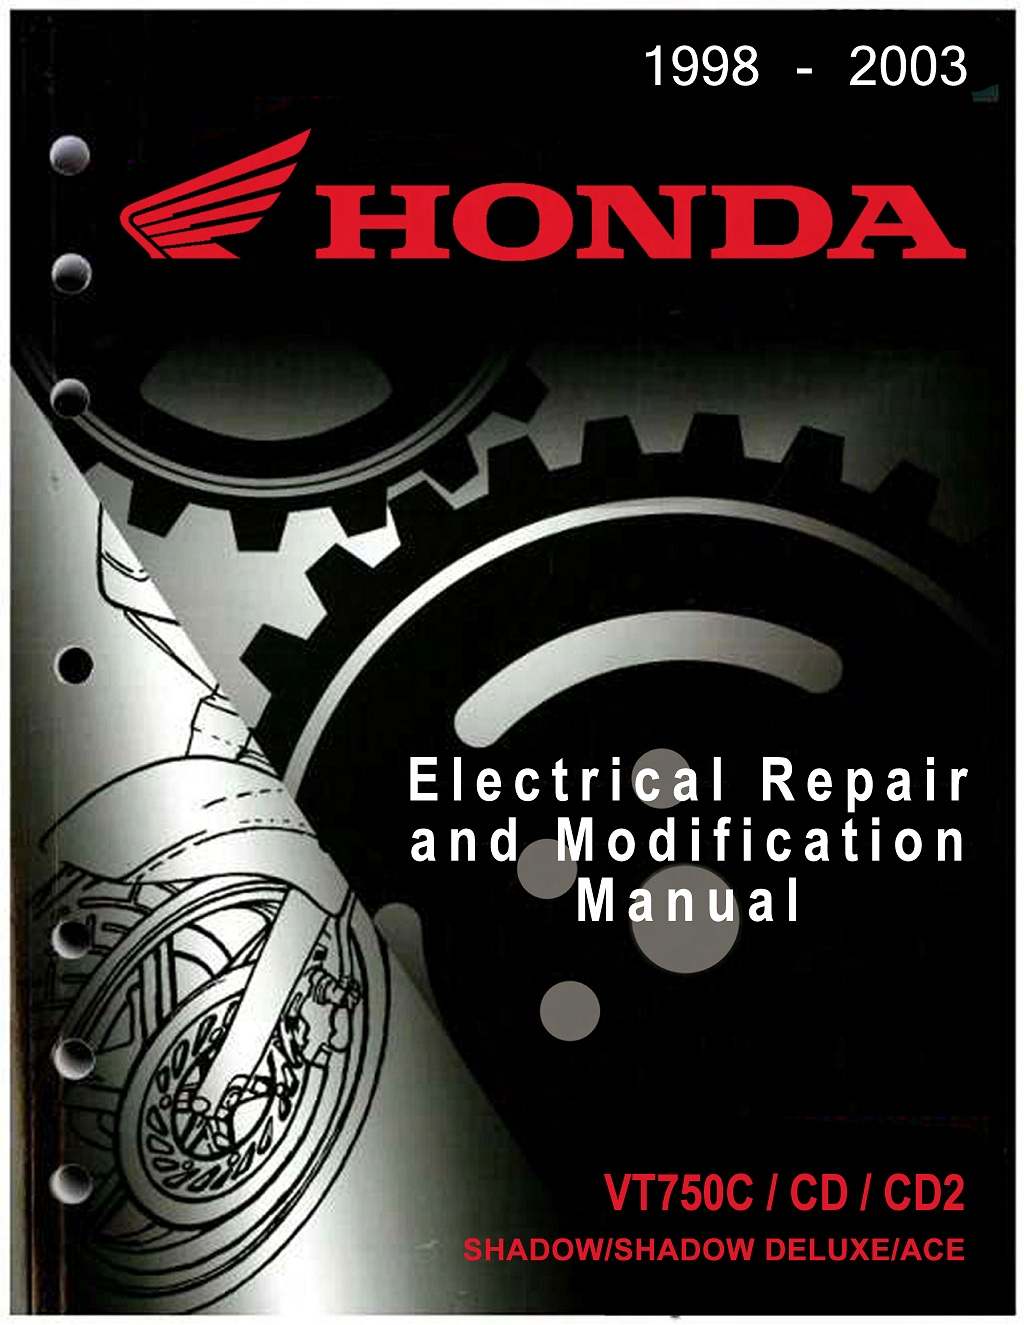 Workshop Manual for Honda VT750C (1998-2003) Electrial Repair and Modification Manual